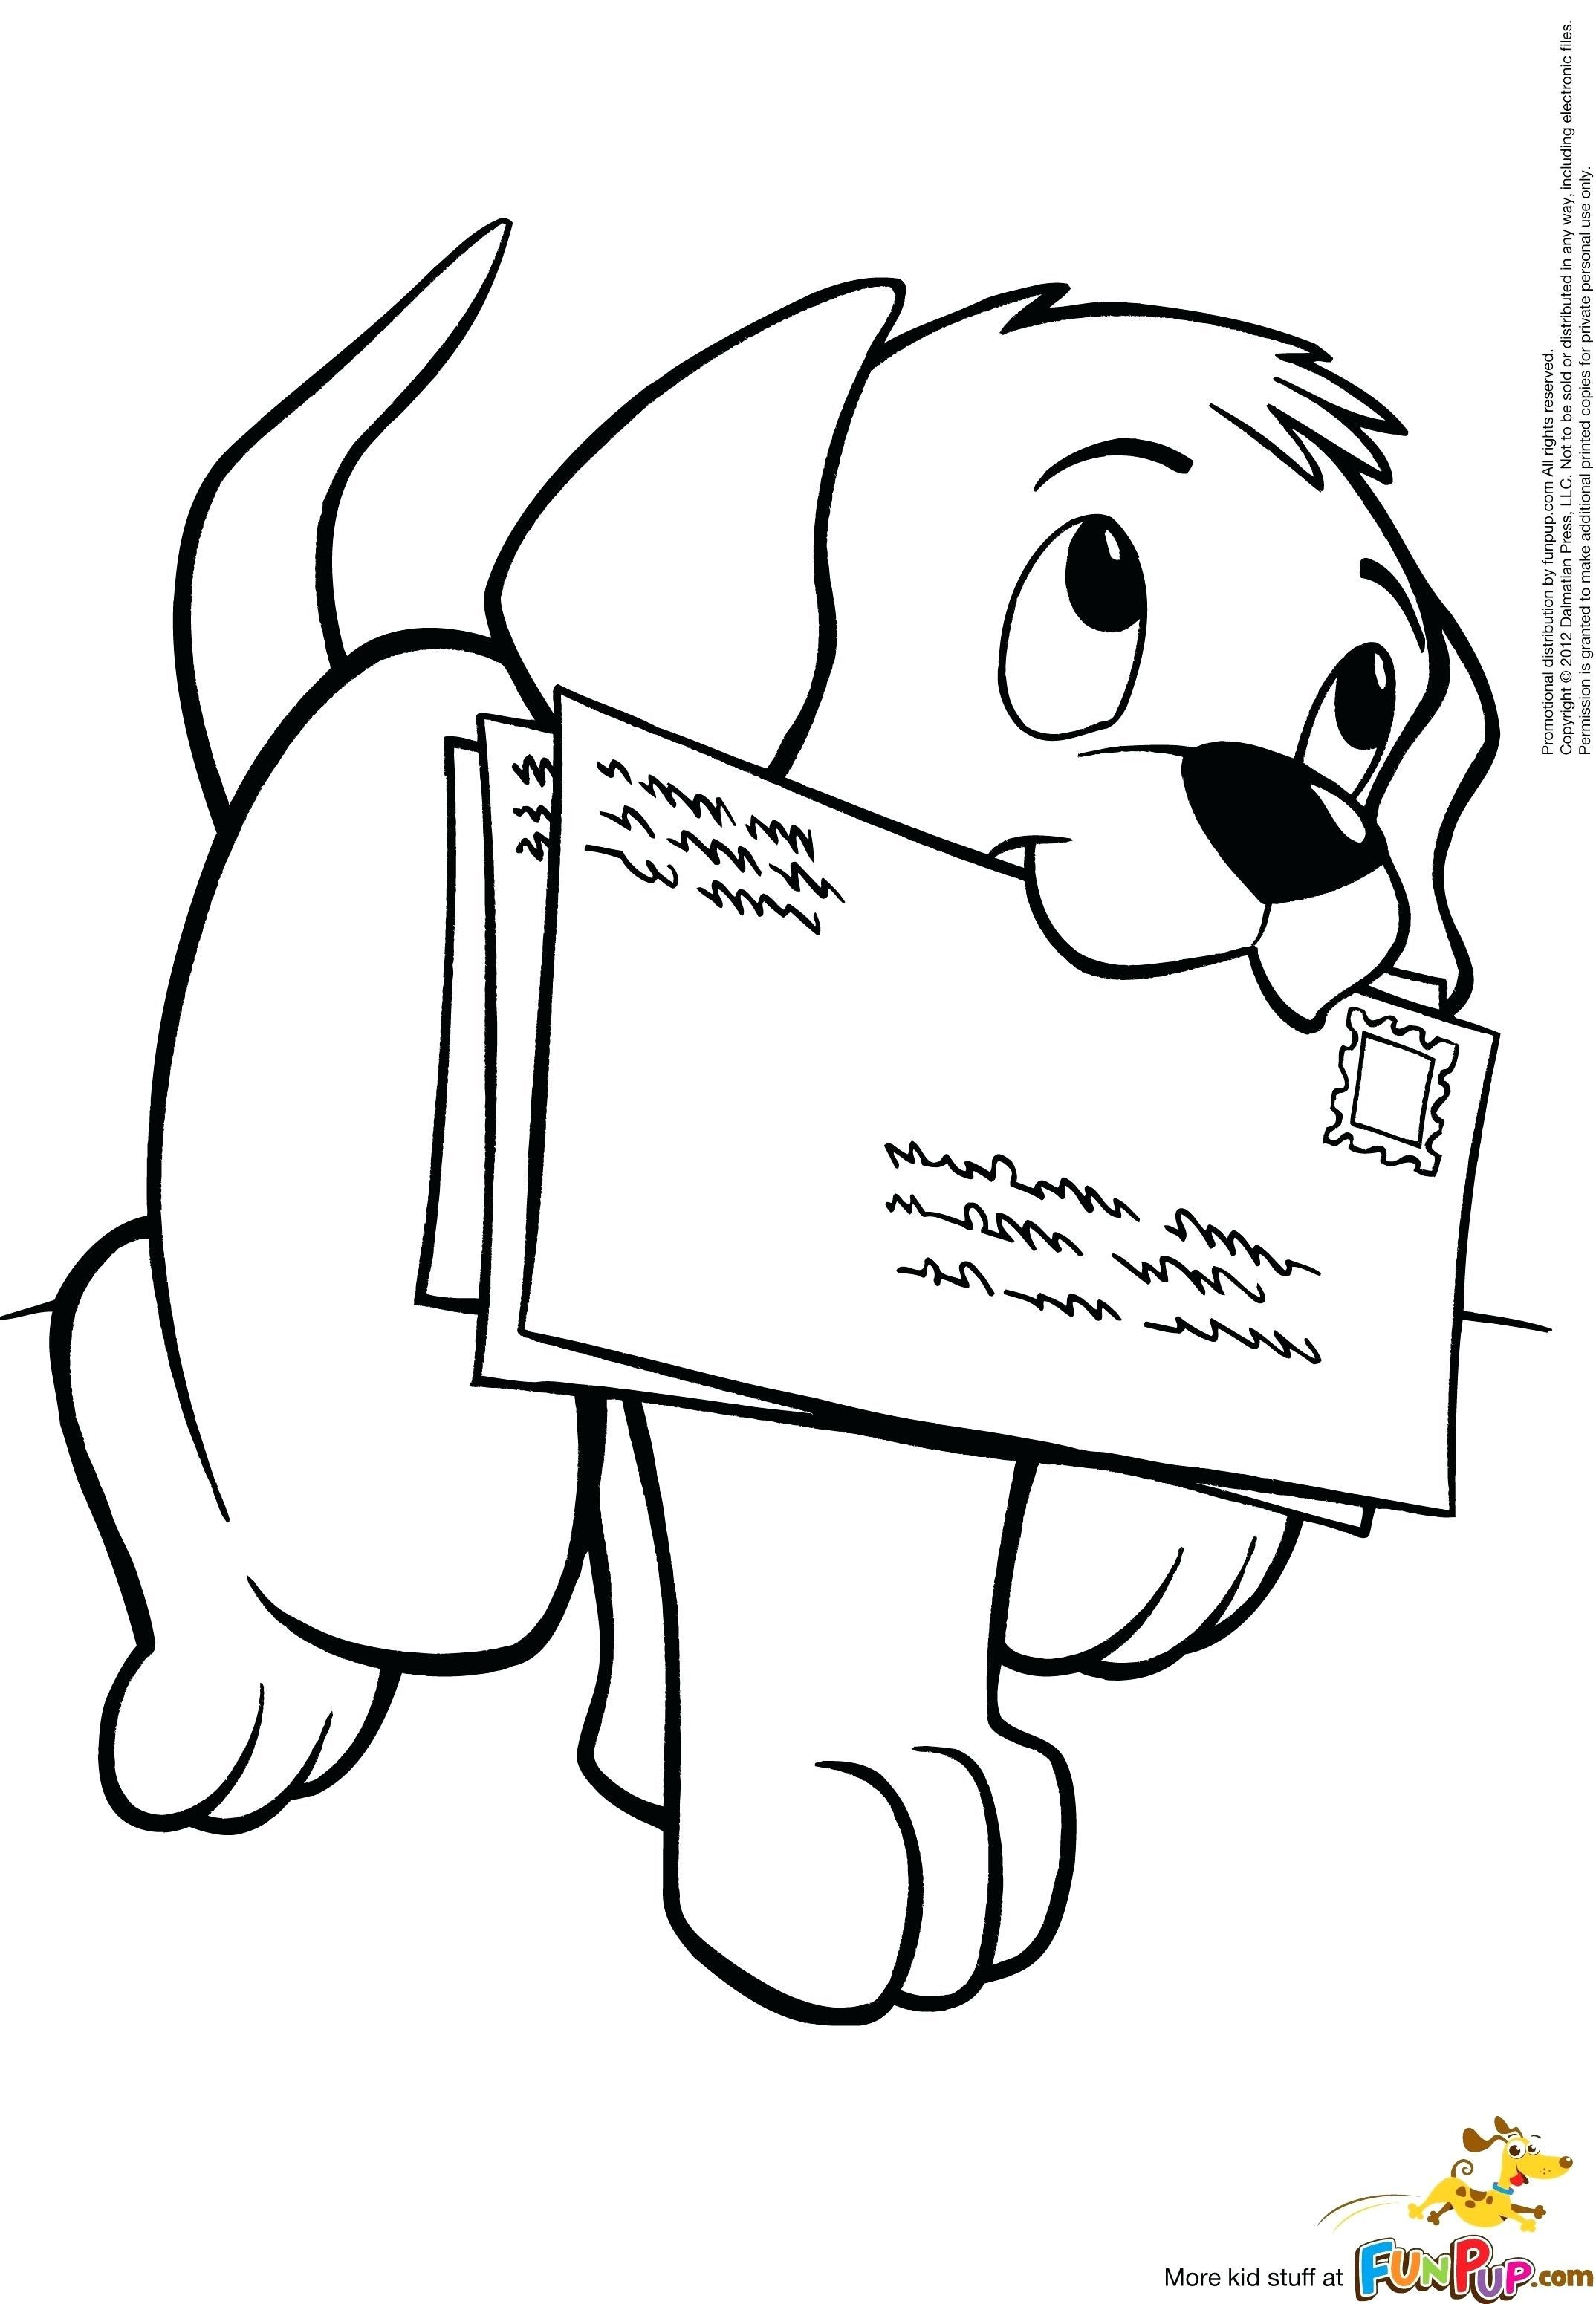 Coloring Pages Of A Dog Printable Ndash Huskypaperco Puppy